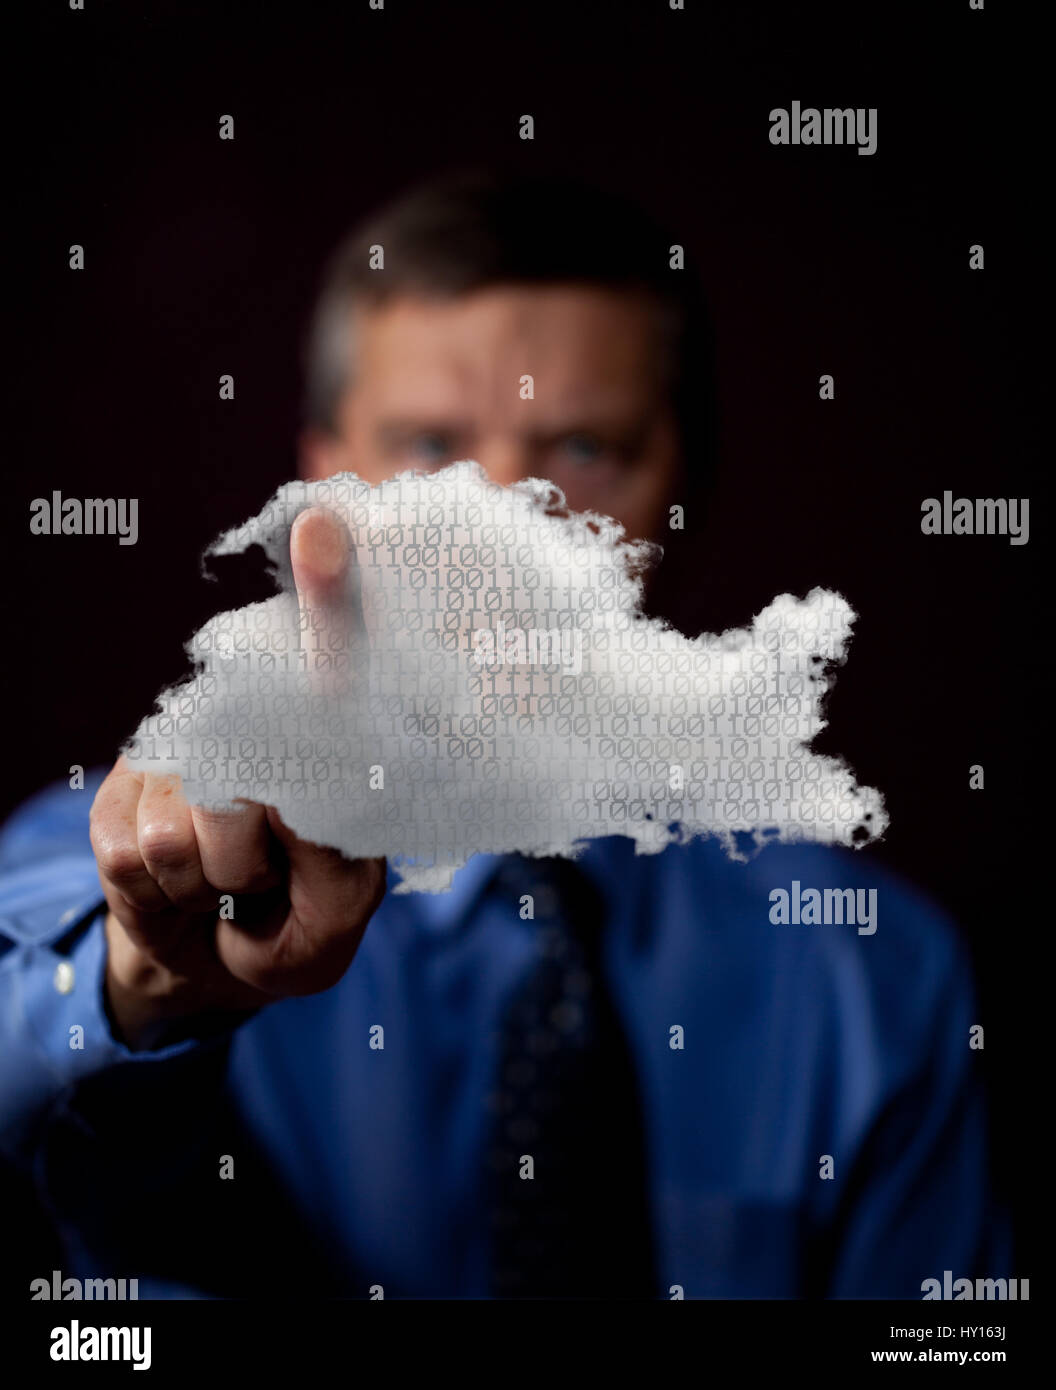 Businessman accessing a cloud computing network - cloud computing concept - Stock Image